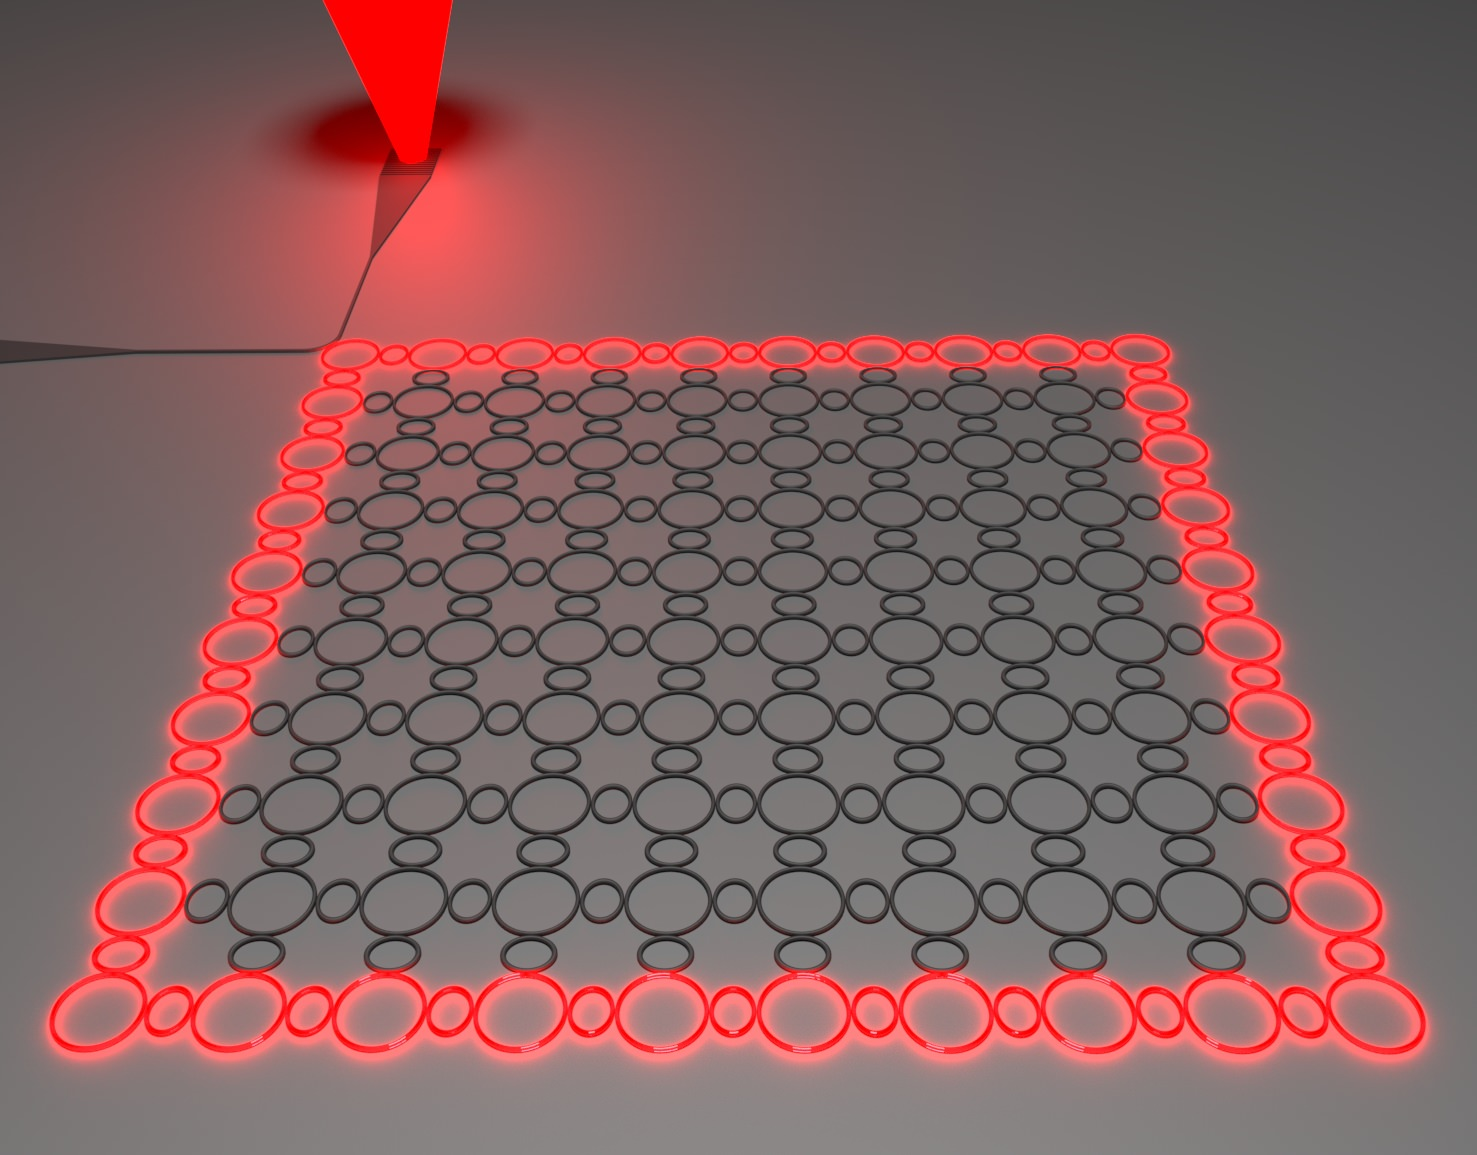 Illustration of the topological insulator laser: the light goes around the perimeter unobstructed by sharp corner or disorder, and eventually exits through the output port.